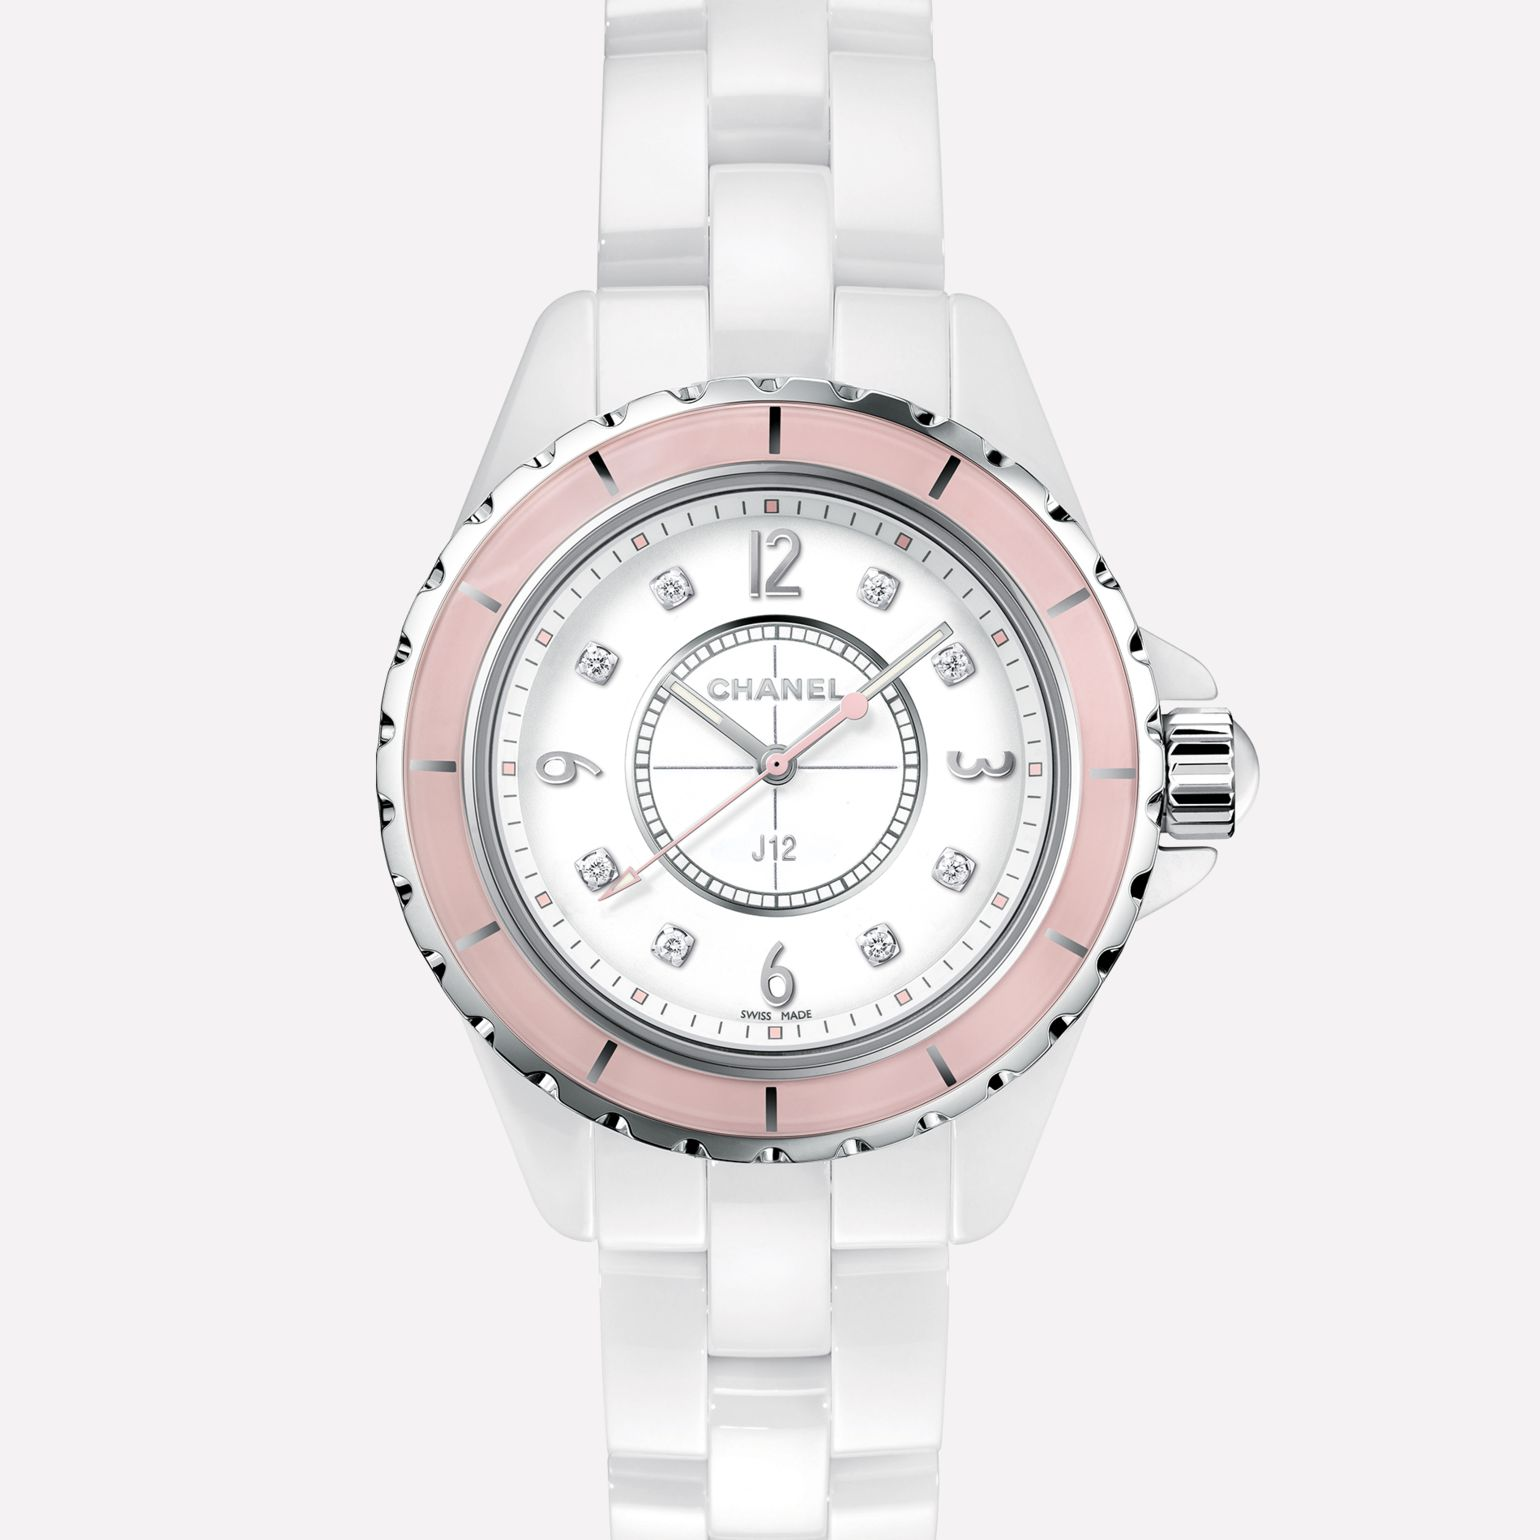 J12 Soft Rose Watch White ceramic and steel, pink bezel, diamond indicators